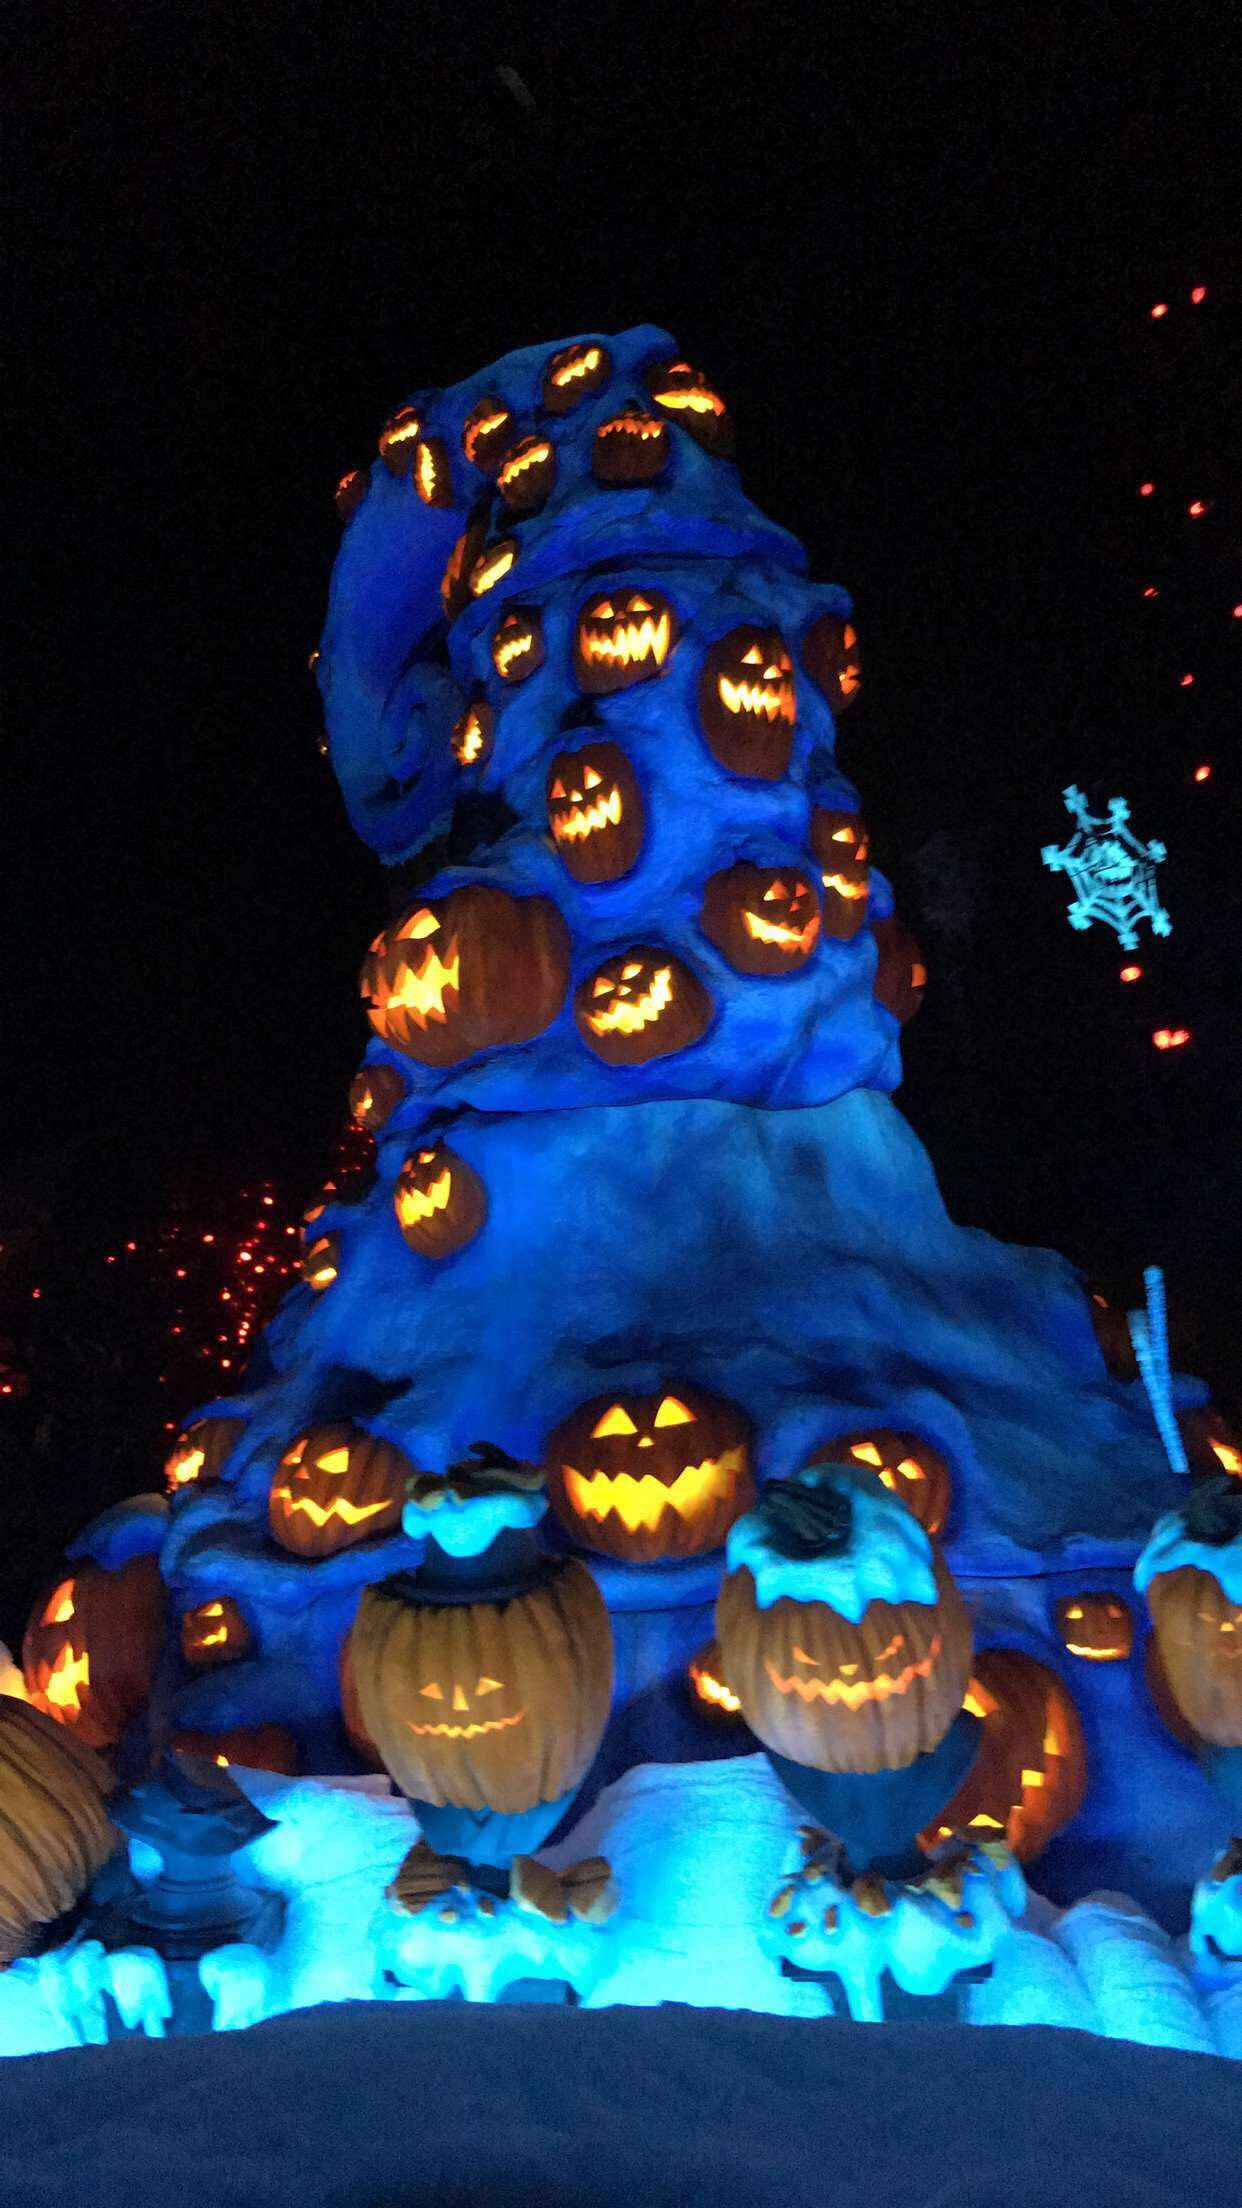 Disneyland.  The Haunted Mansion.  The Nightmare Before Christmas